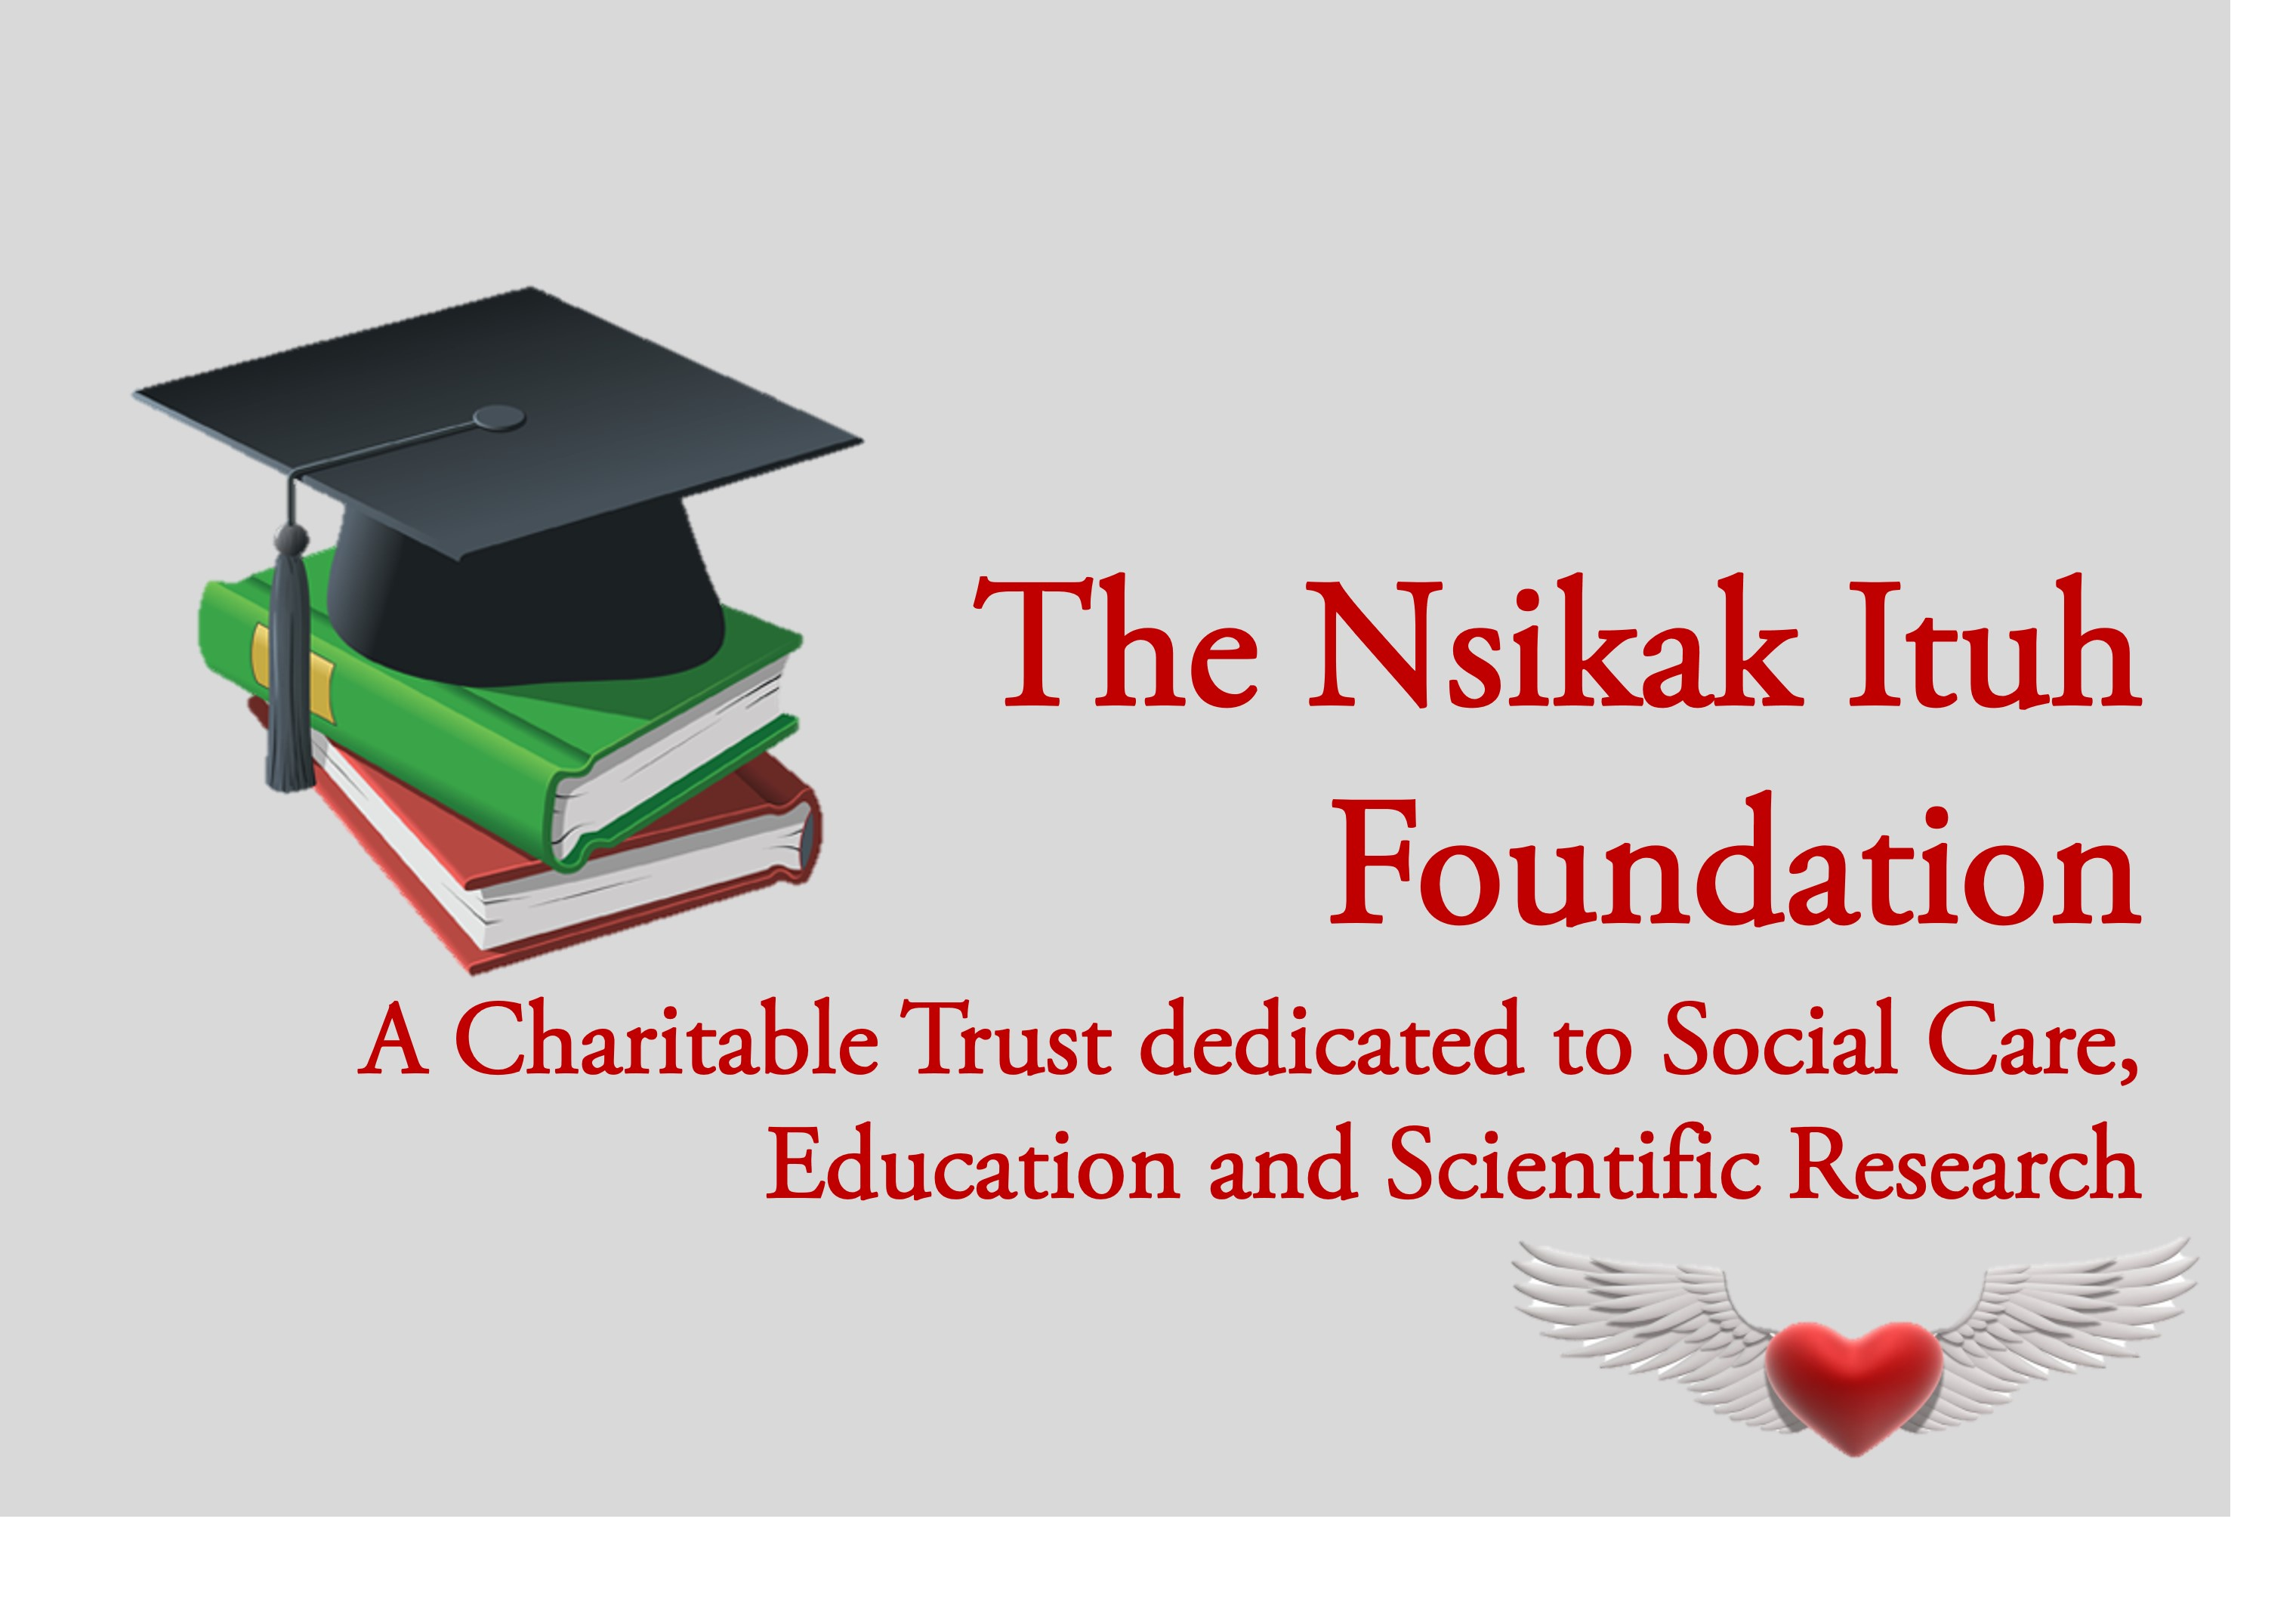 The Nsikak Ituh Foundation